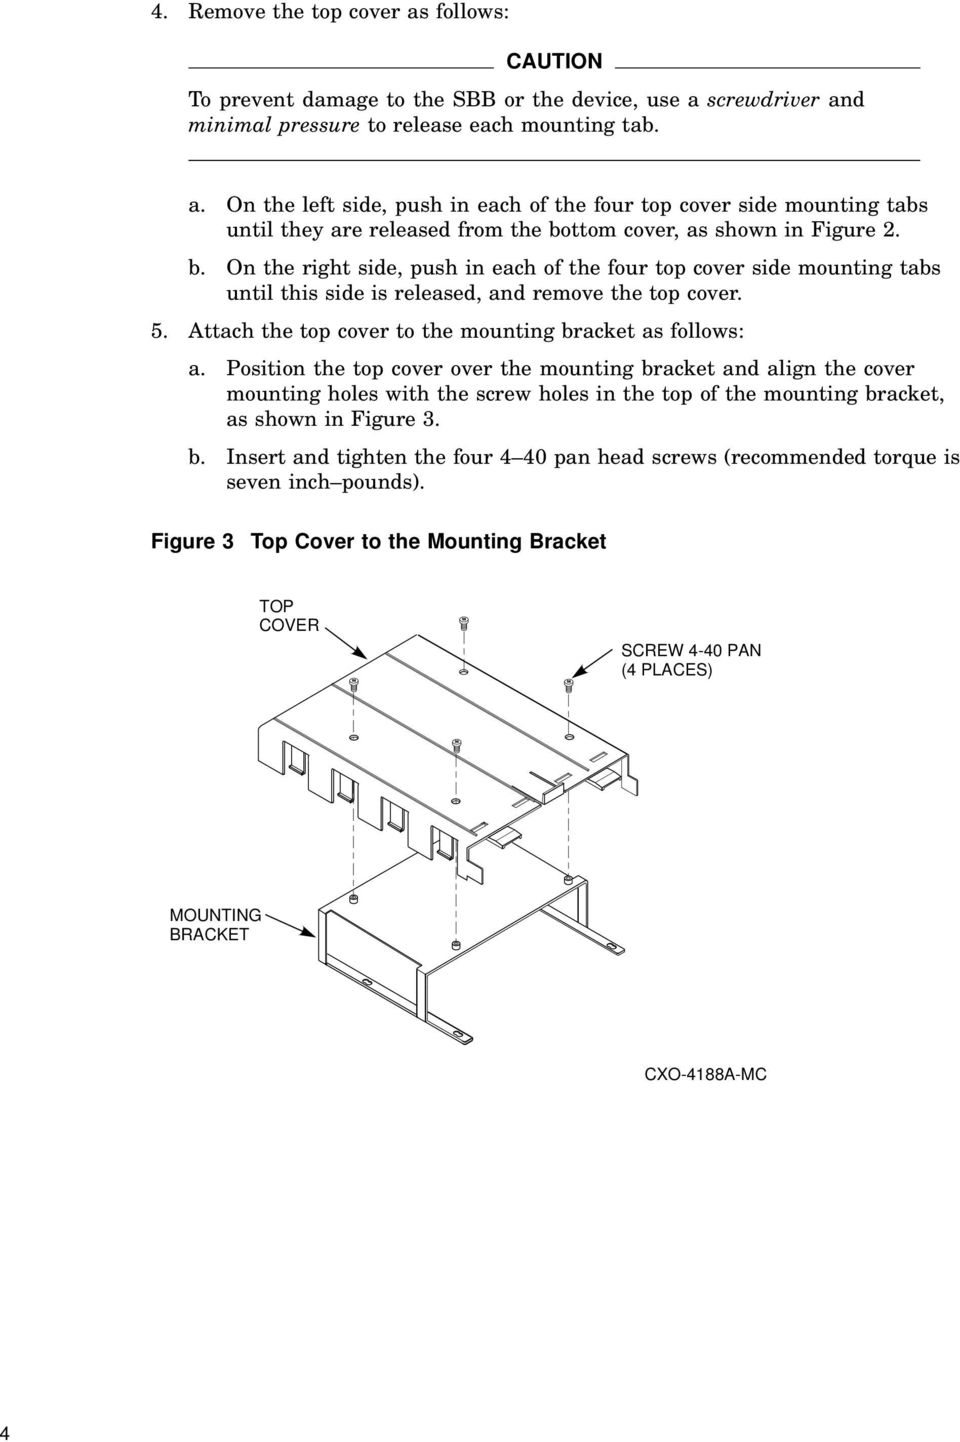 Position the top cover over the mounting bracket and align the cover mounting holes with the screw holes in the top of the mounting bracket, as shown in Figure 3. b. Insert and tighten the four 4 40 pan head screws (recommended torque is seven inch pounds).